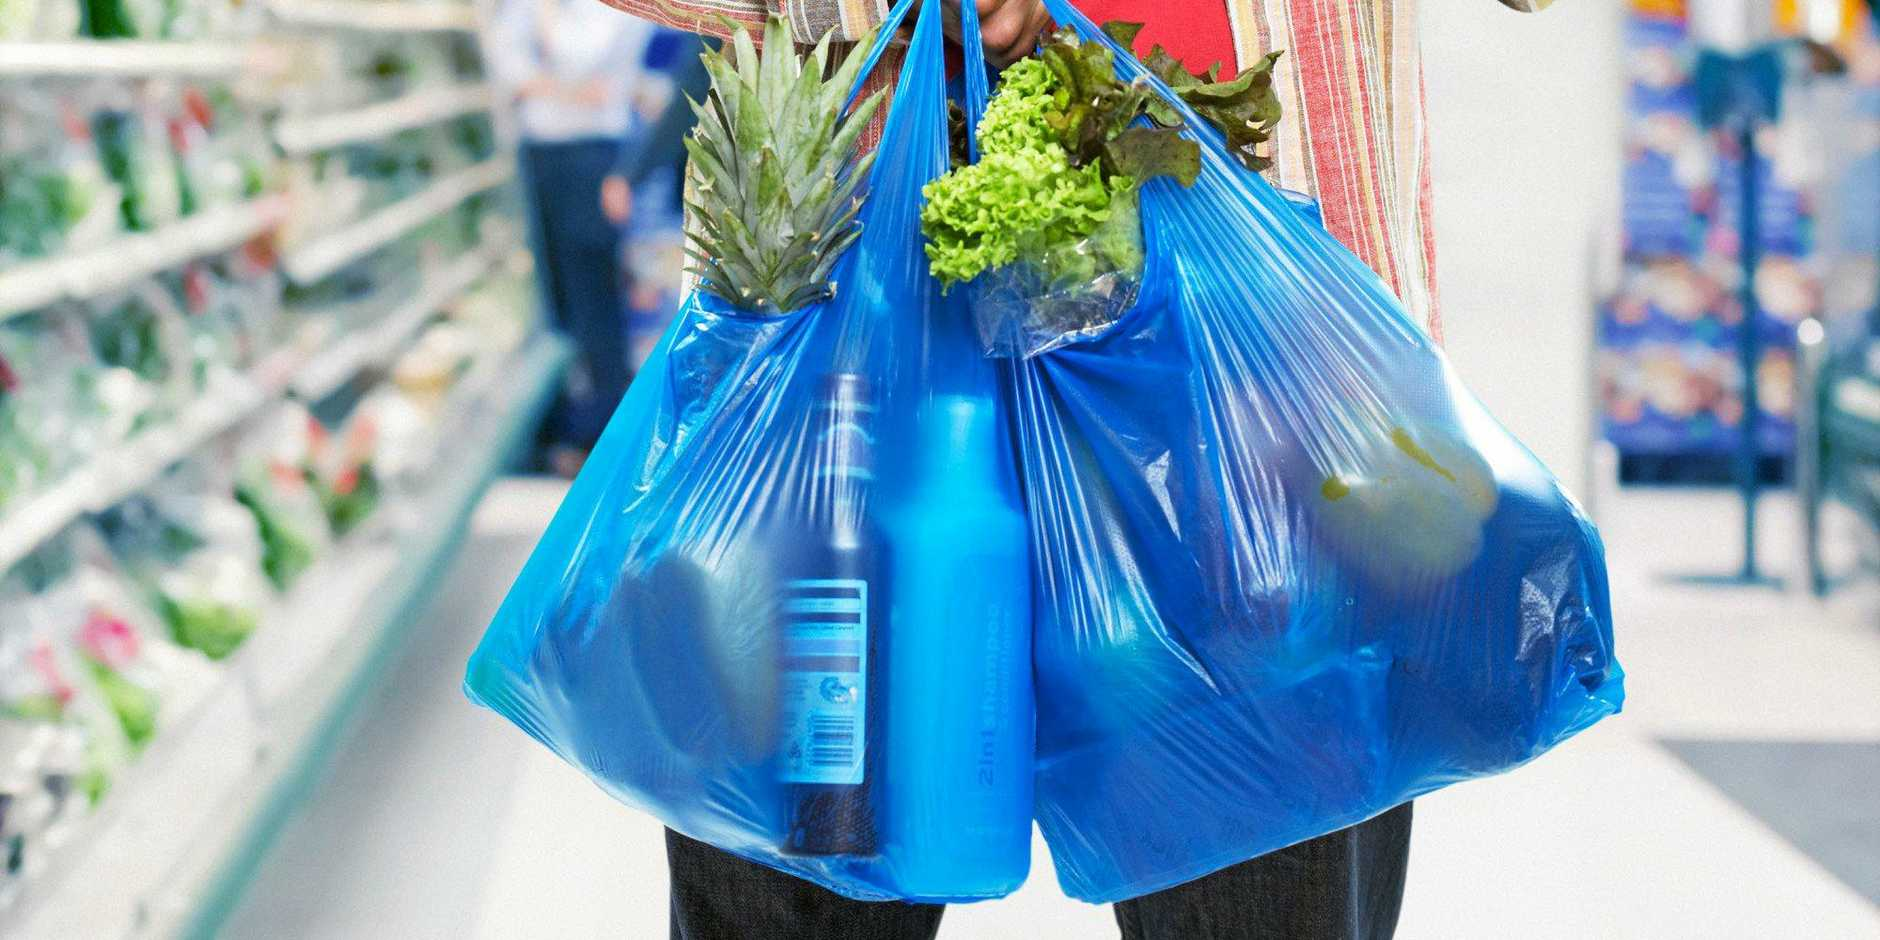 Plastic bags. Photo contributed